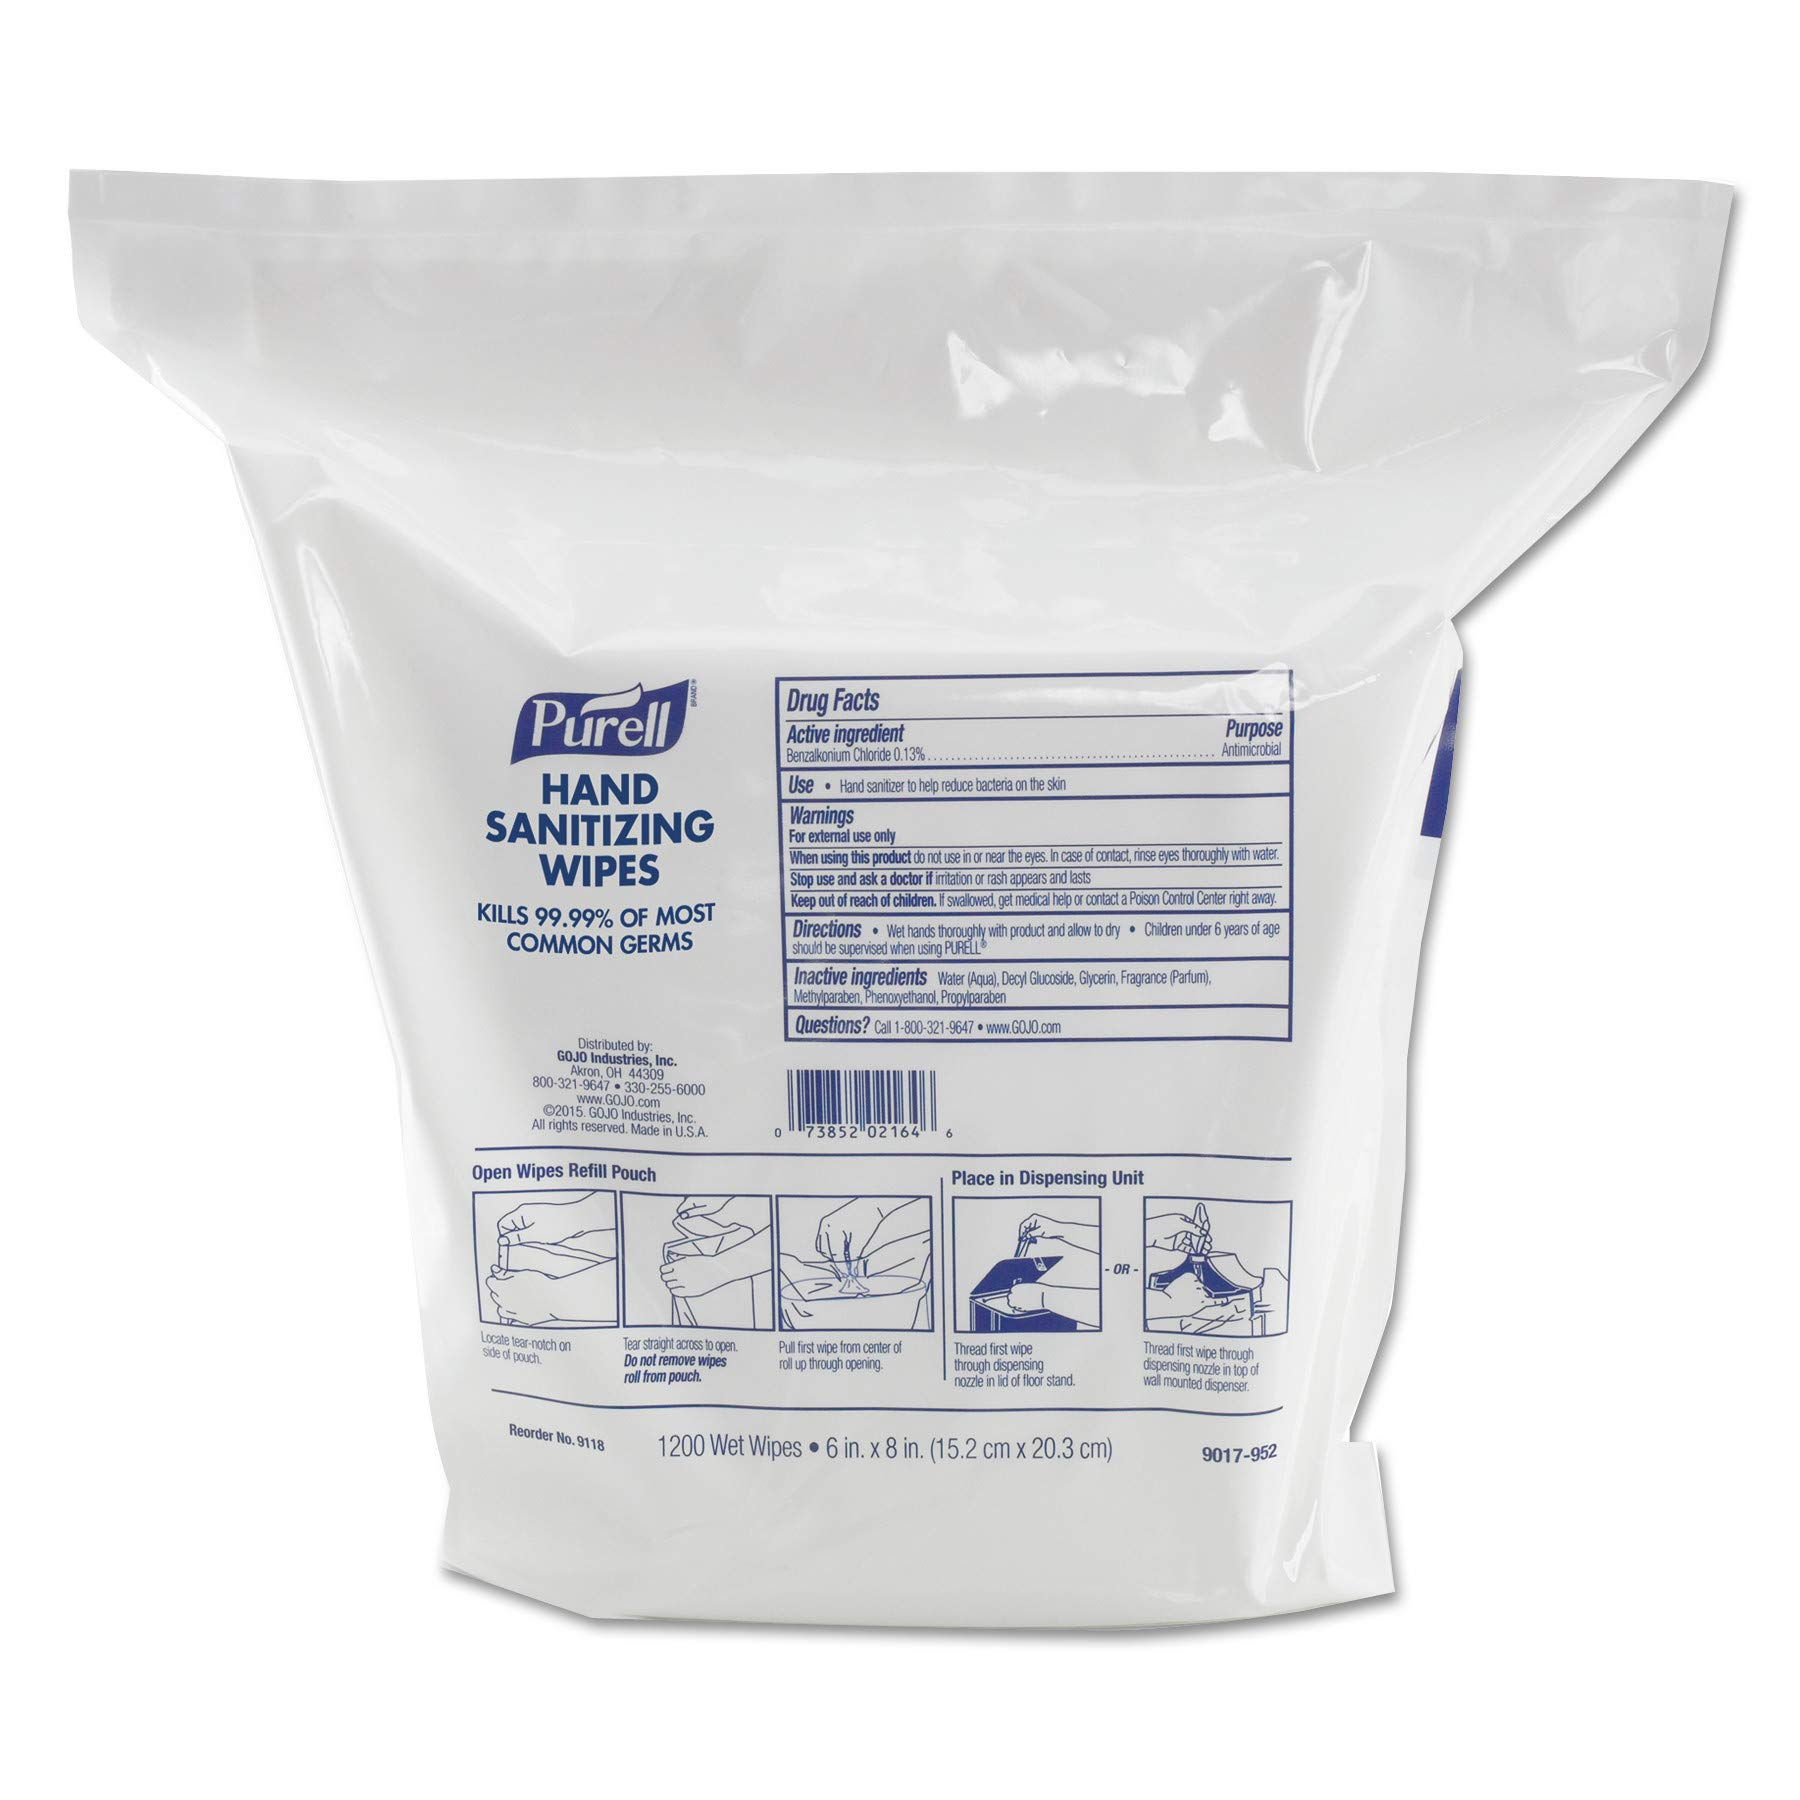 PURELL 911802 Hand Sanitizing Wipes, 6'' x 8'', White, 1200 per Refill Pouch (Case of 2 Refills)